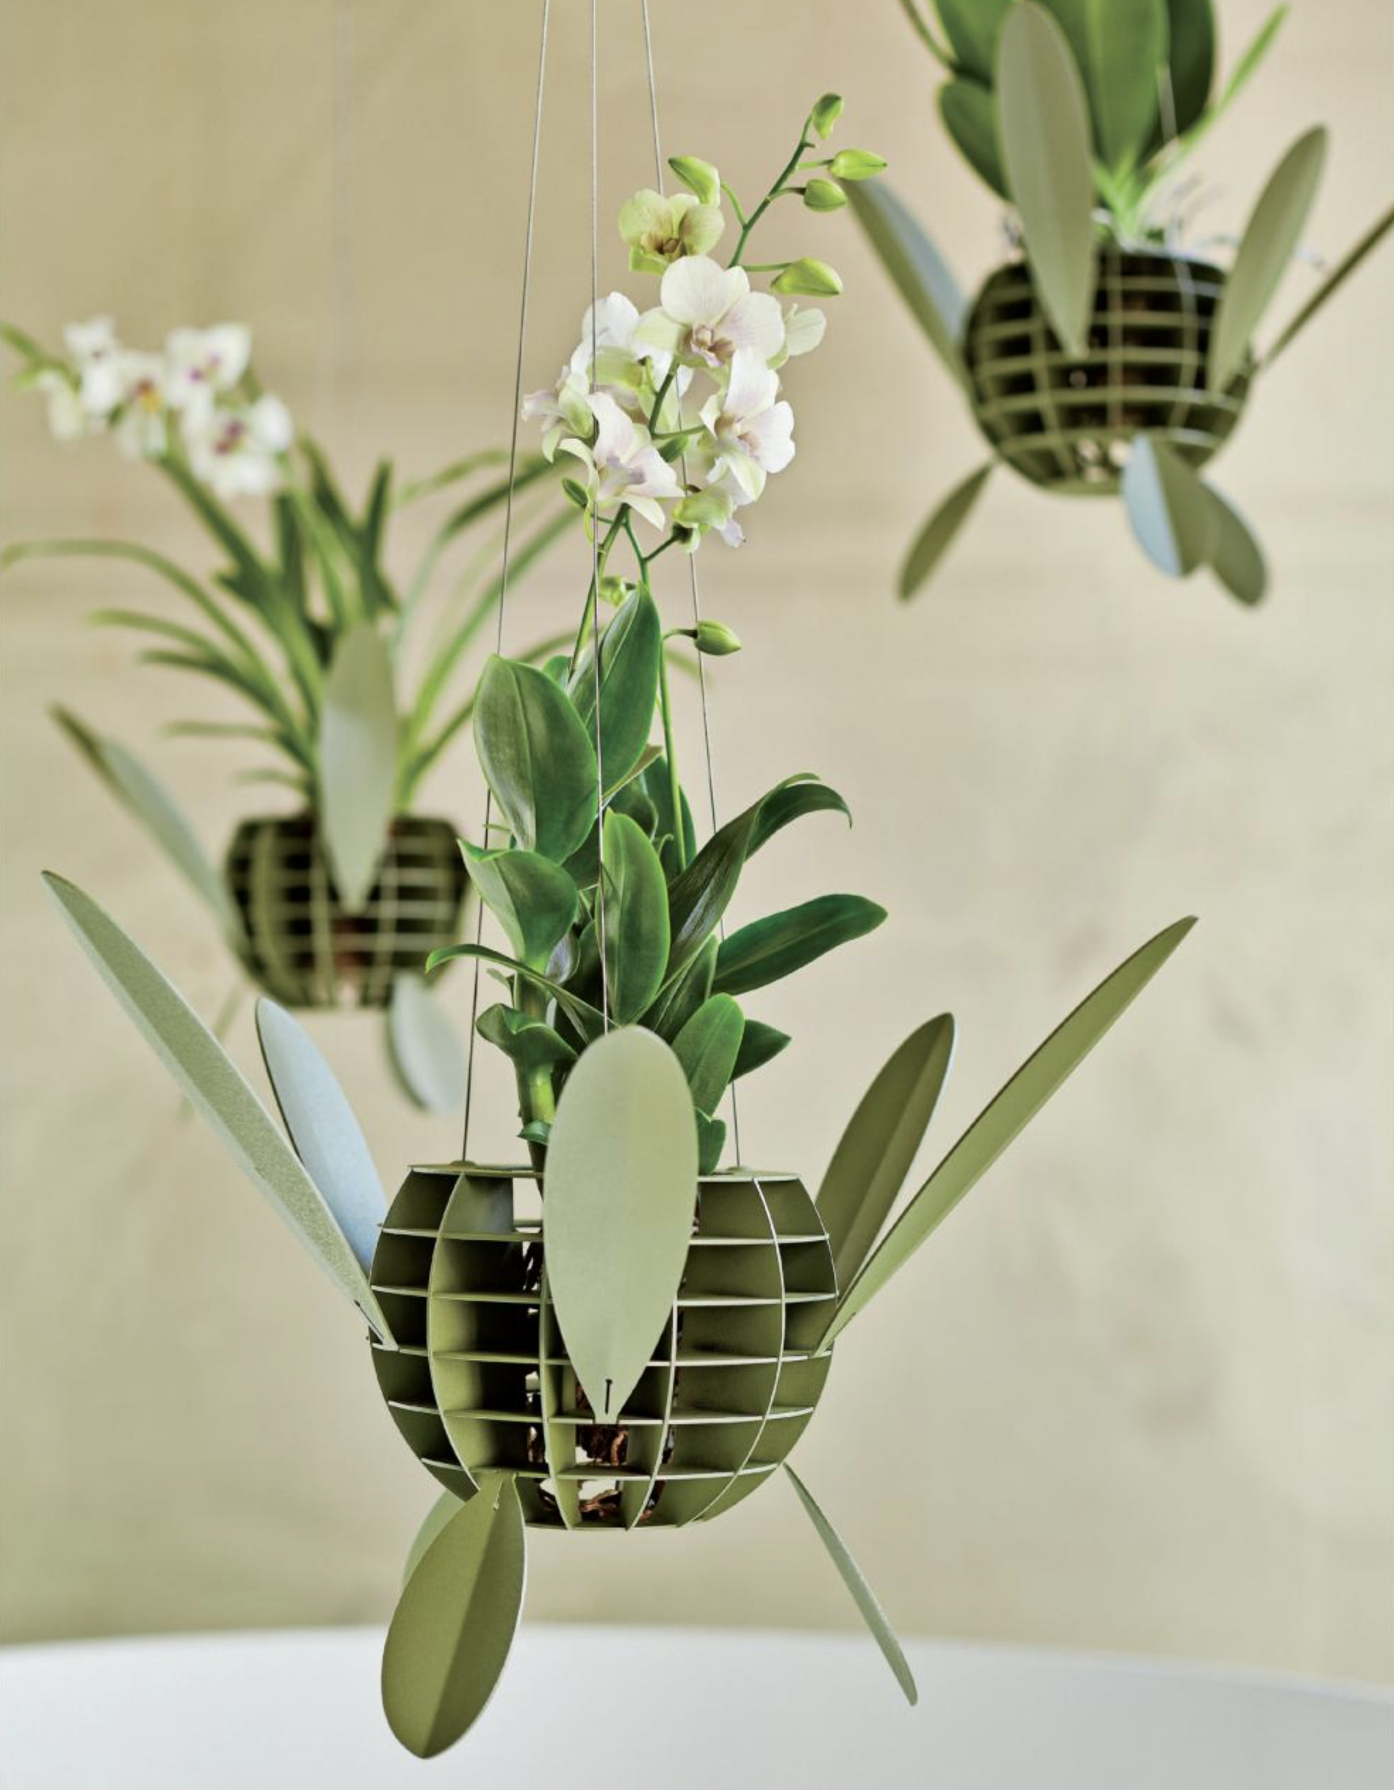 The limited edition Orquid orchid planter by Roderick Vos